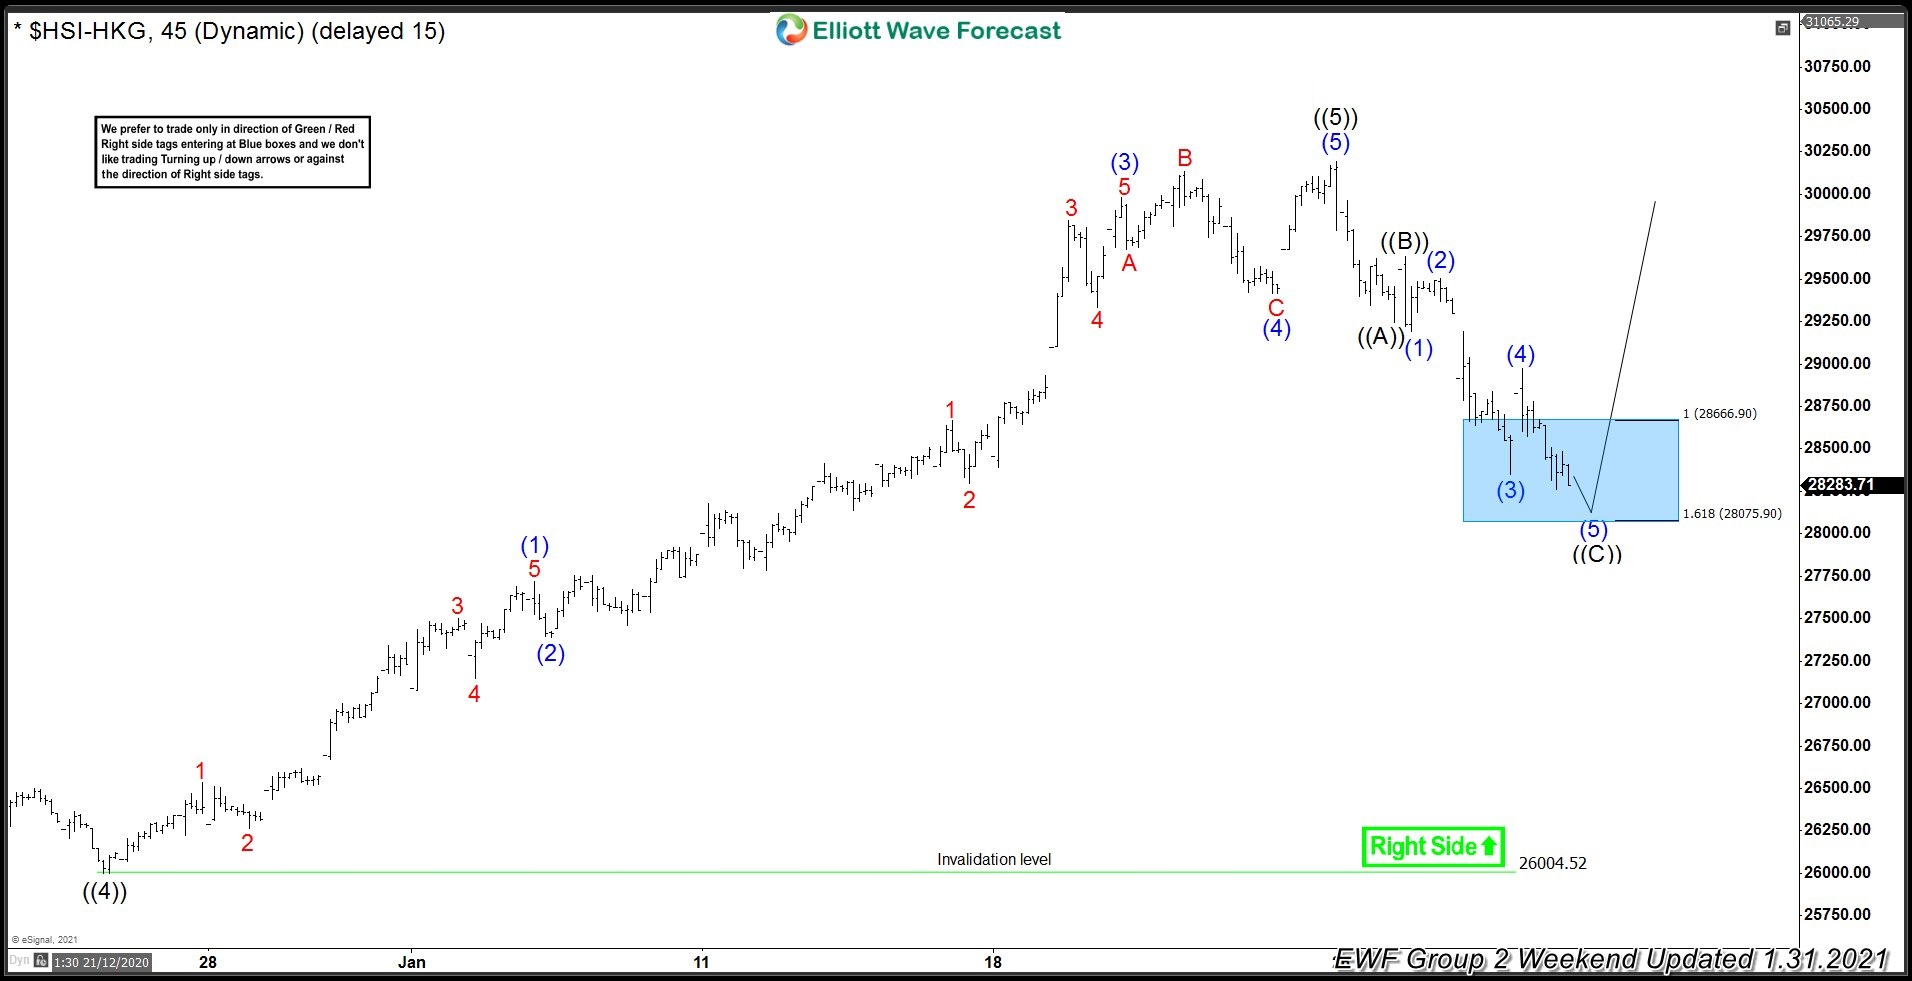 Hang Seng ( $HSI-HKG) Buying The Dips After Elliott Wave Zig Zag